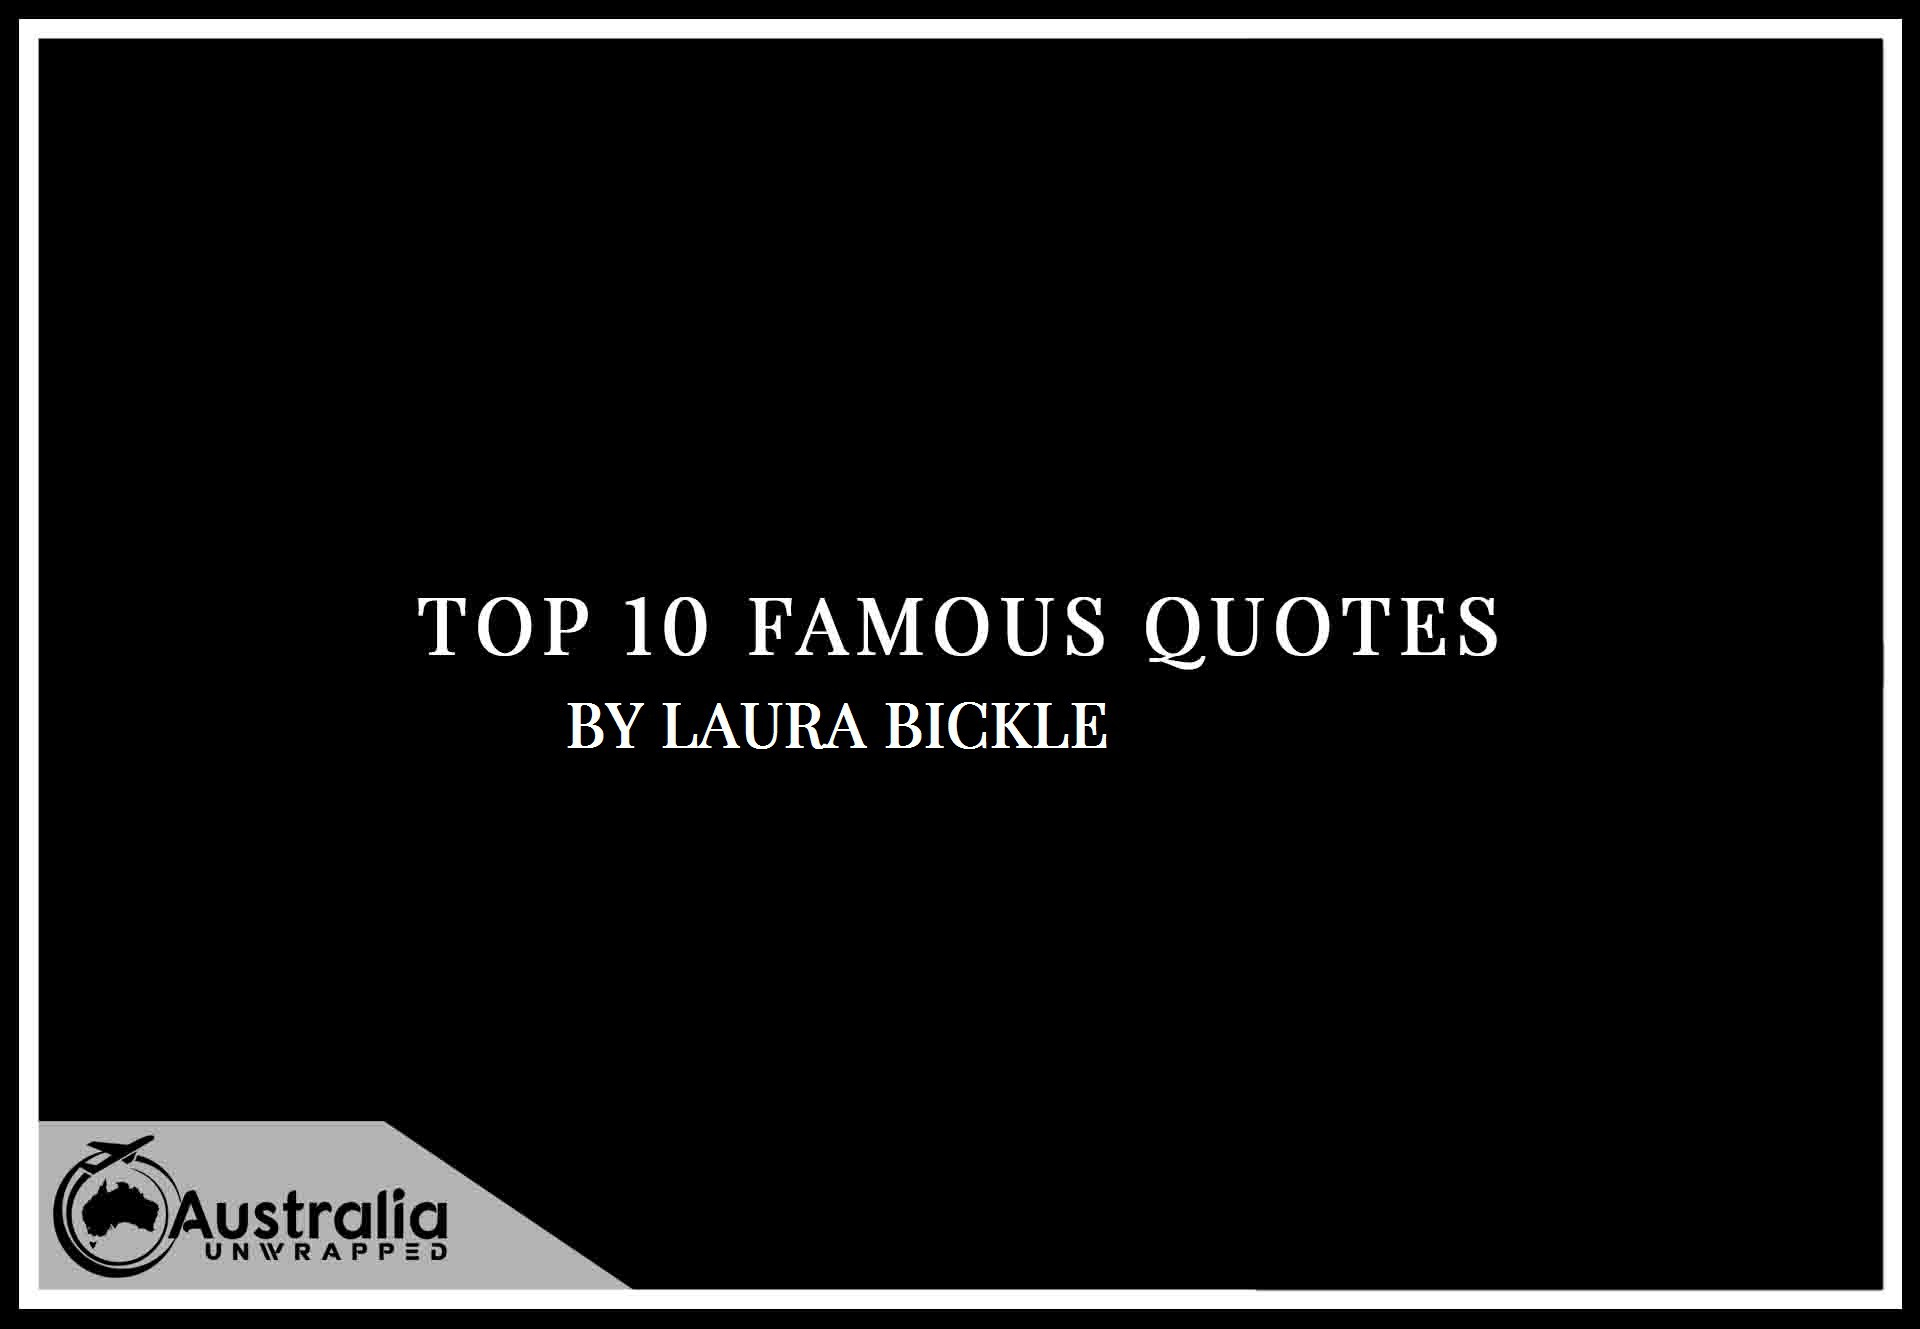 Laura Bickle's Top 10 Popular and Famous Quotes